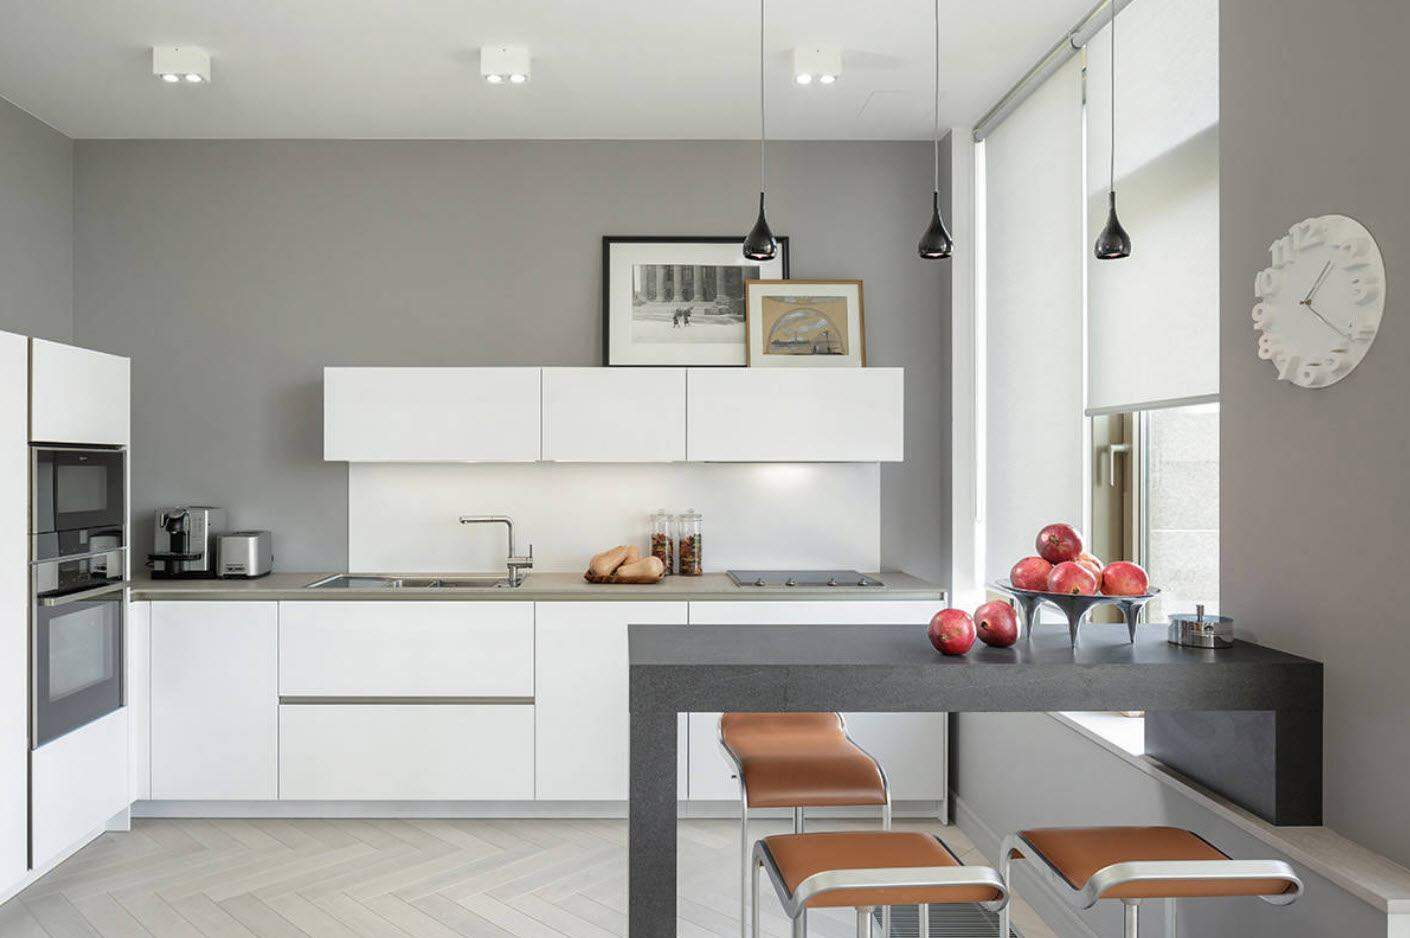 160 Square Feet Kitchen Design Ideas. Nice gray colored walls with built-in bar counter